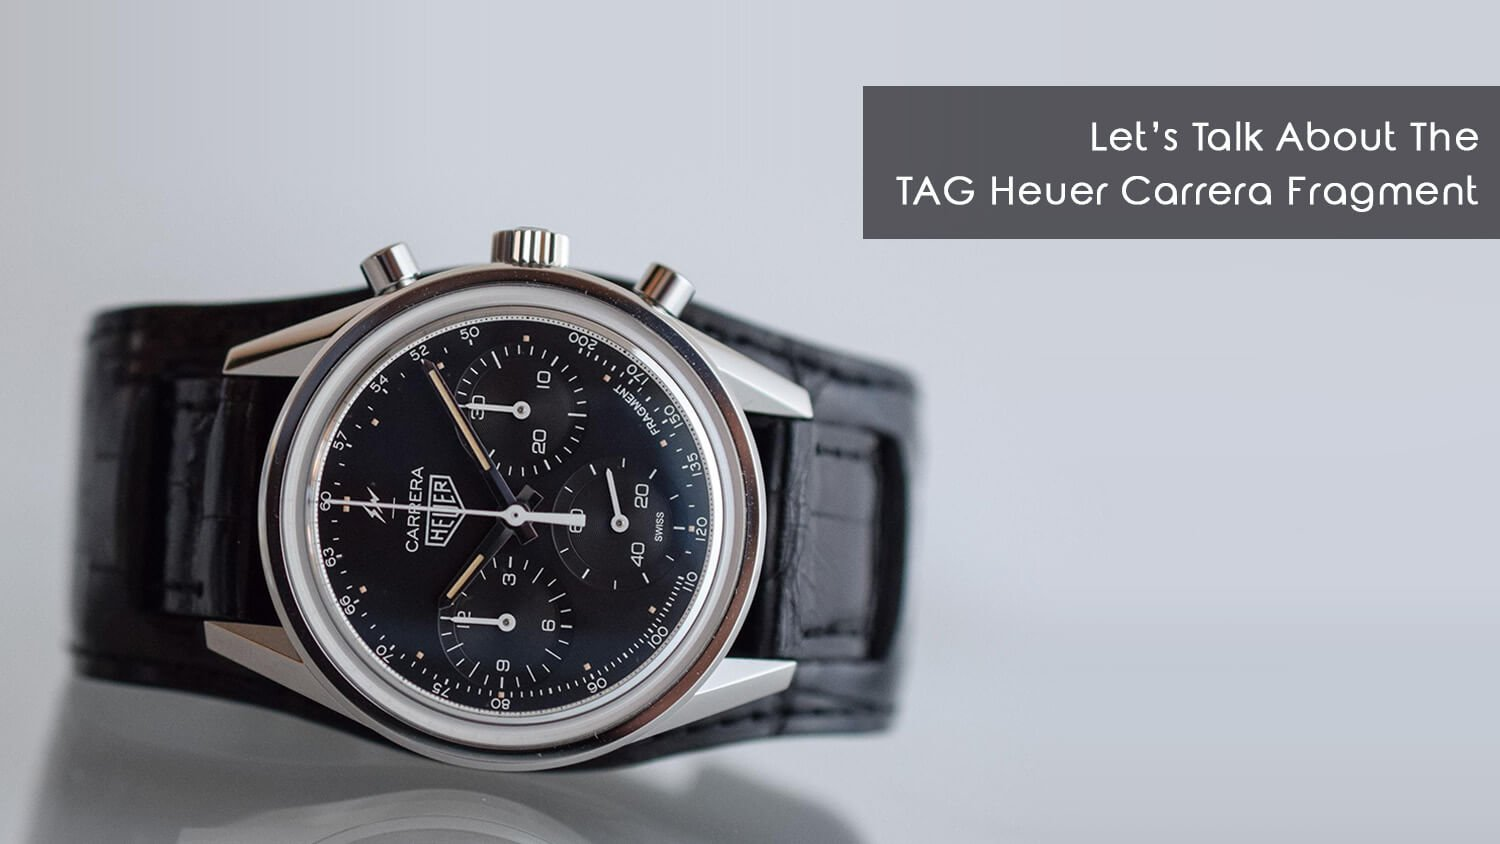 From The Press: Japanese Streetwear Meets Swiss Watchmaking with the TAG Heuer Carrera Fragment